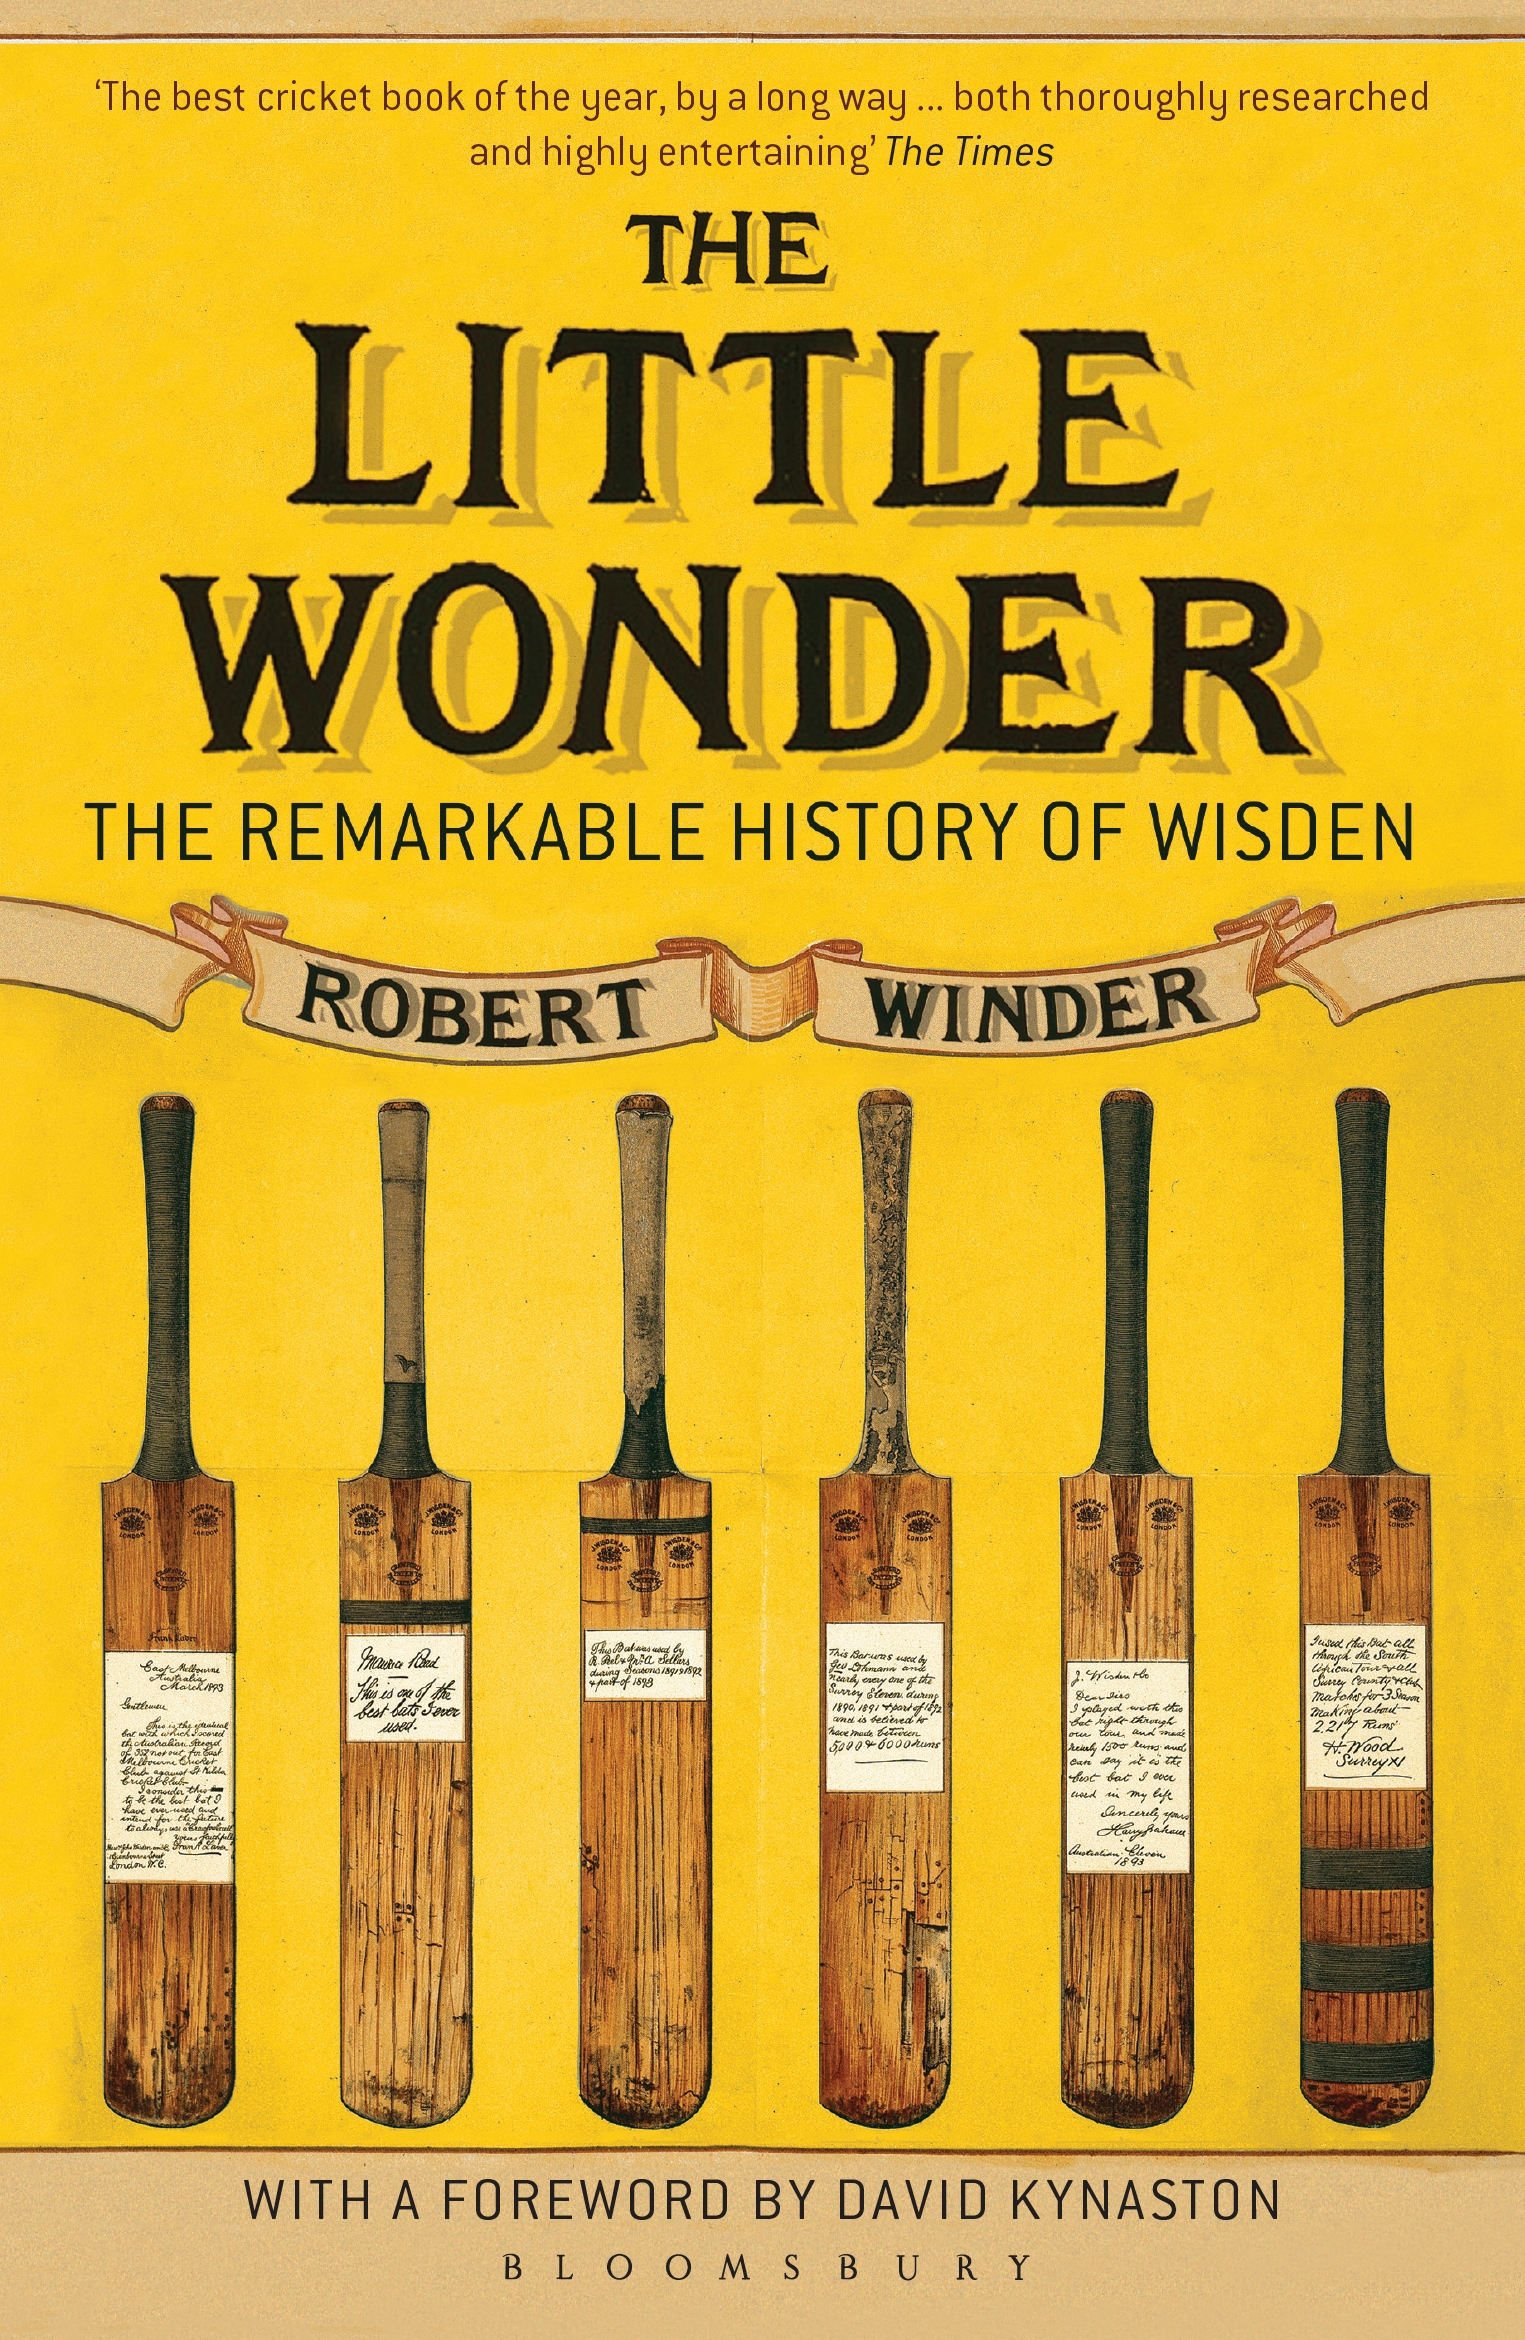 The Little Wonder The Remarkable History of Wisden